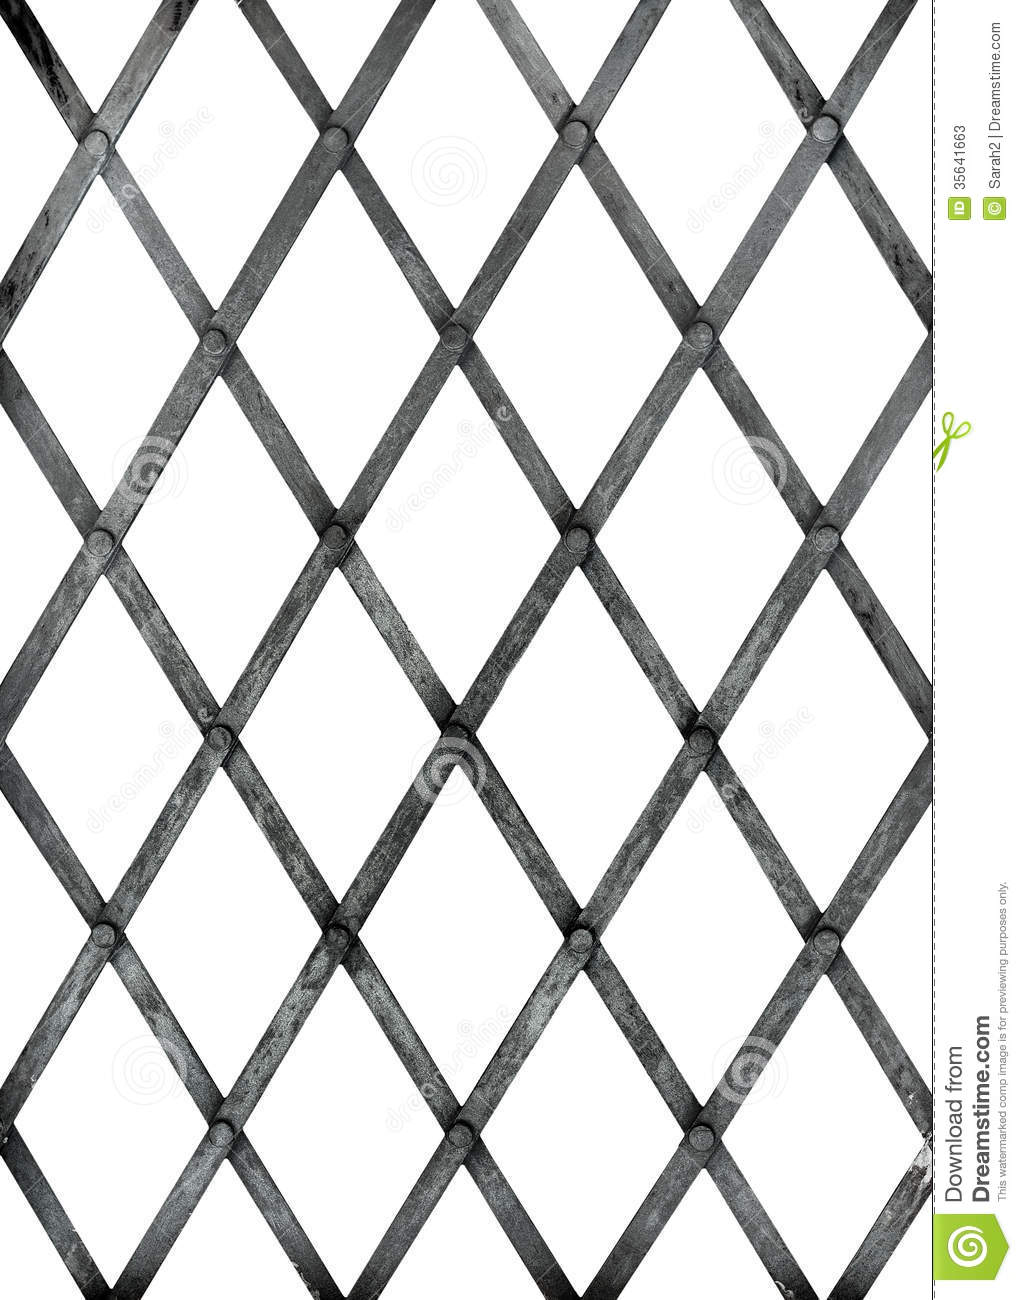 Old Iron Bars For Window Prison Isolated Over White